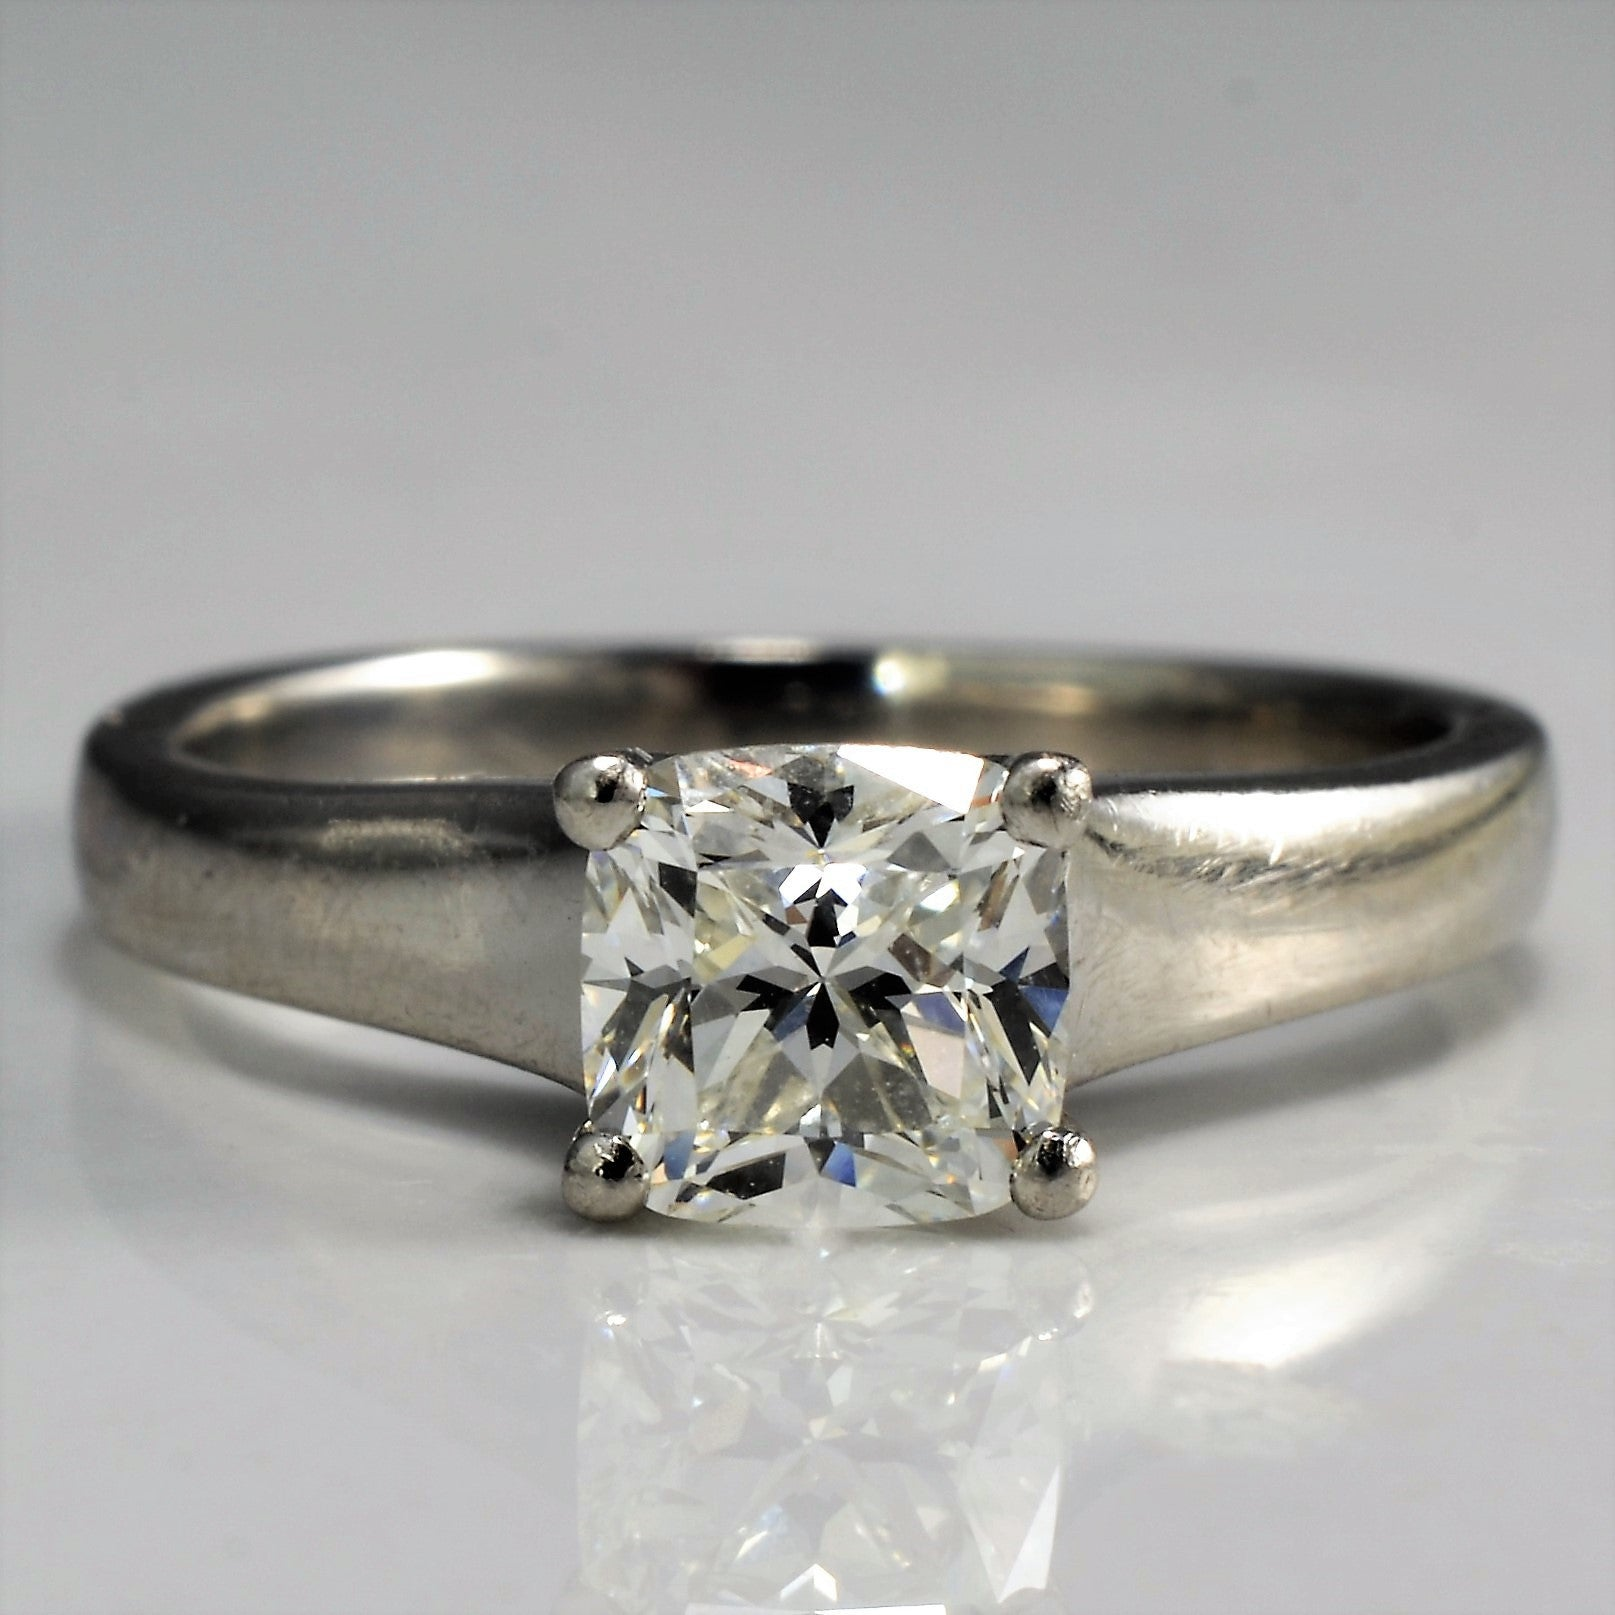 ring rings engagement daimond platinum solid i products diamond banque carat